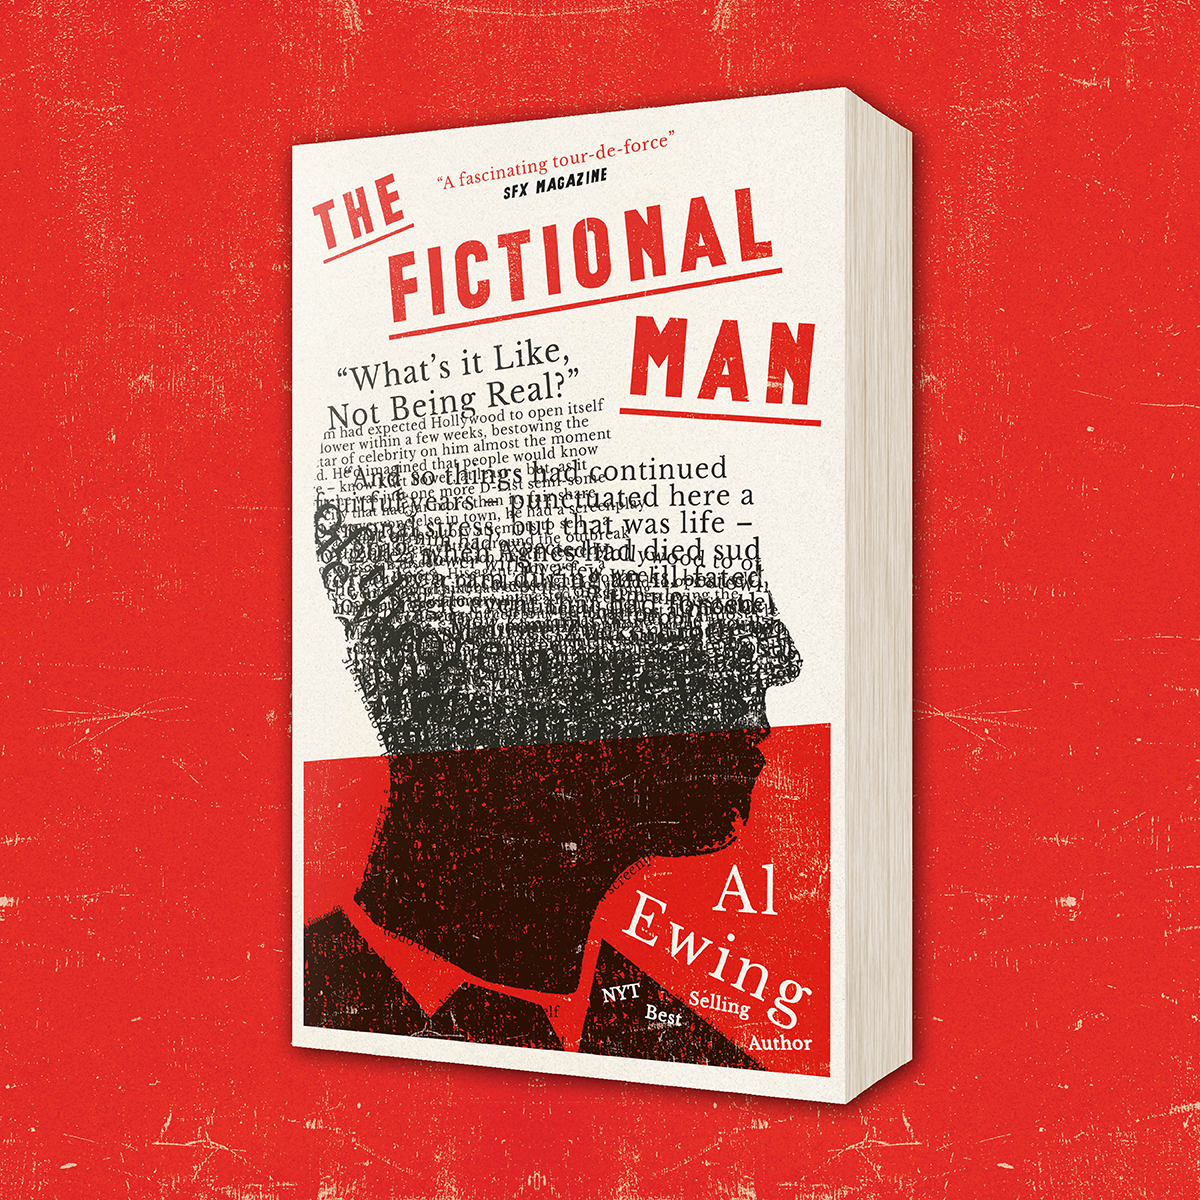 OUT NOW: The Fictional Man by Al Ewing (reissue)